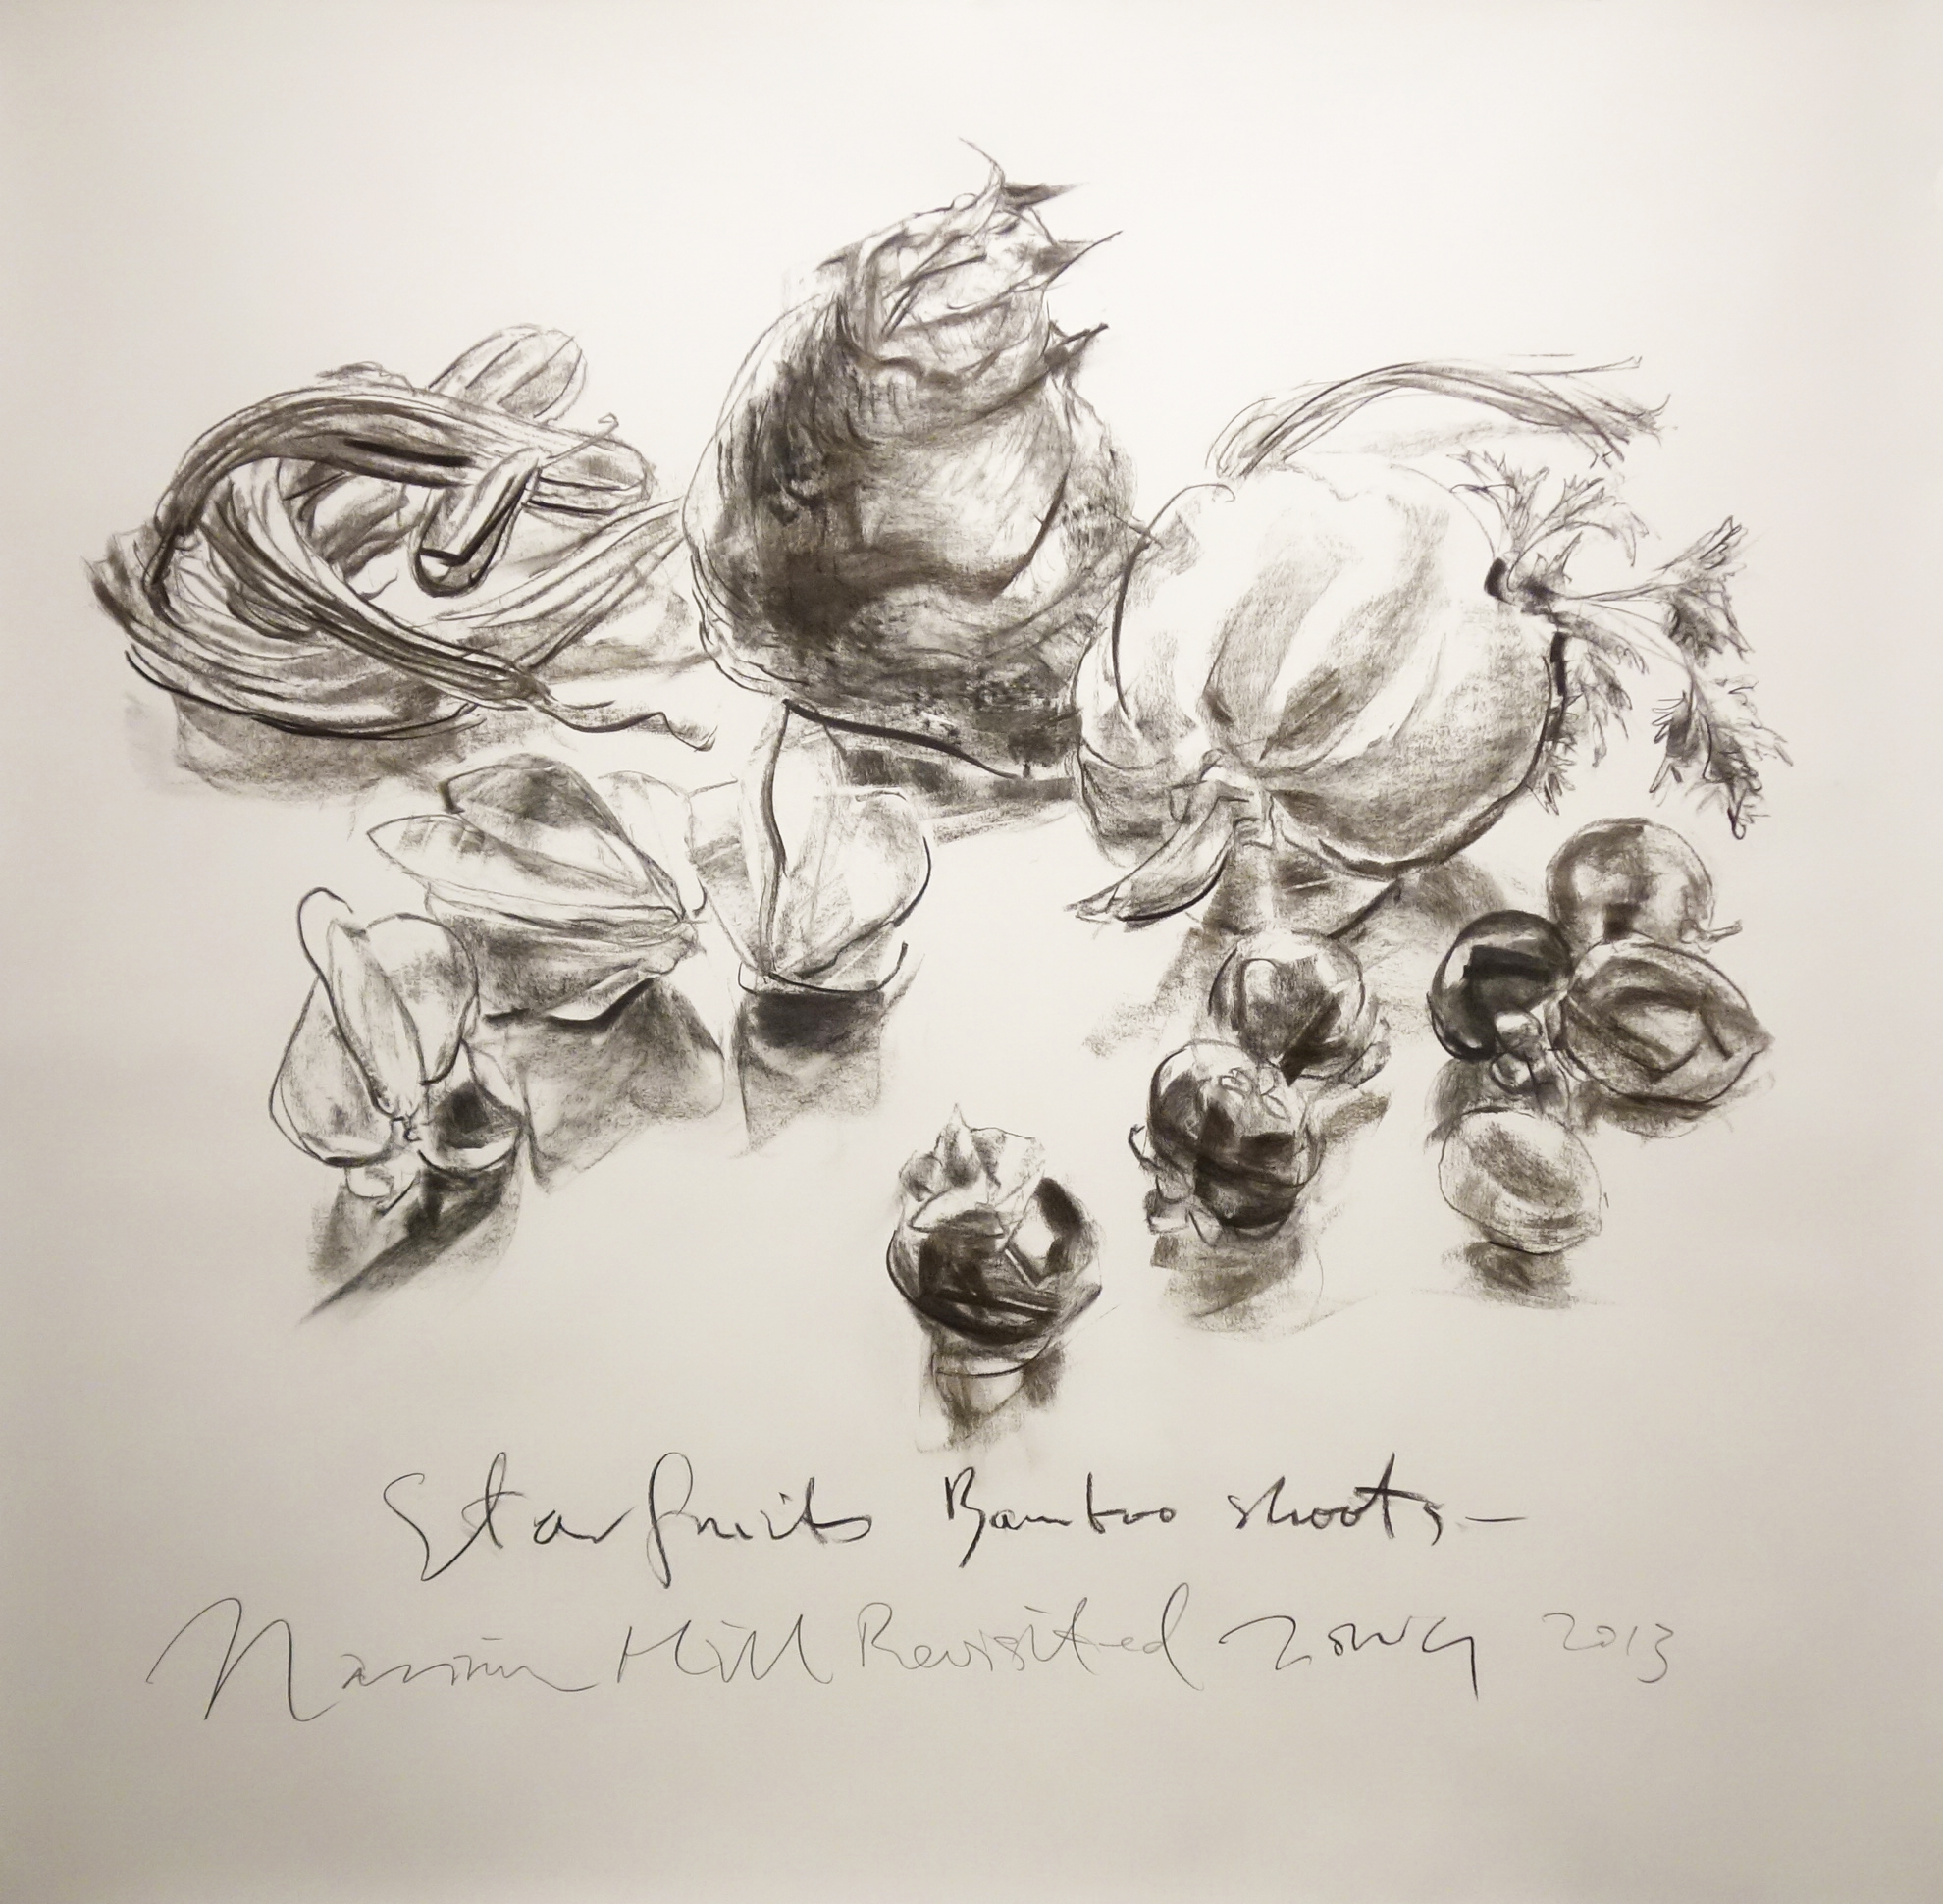 Jimmy ONG  Starfruits Bamboo shoots  Charcoal on paper 2013 120 x 135 cm